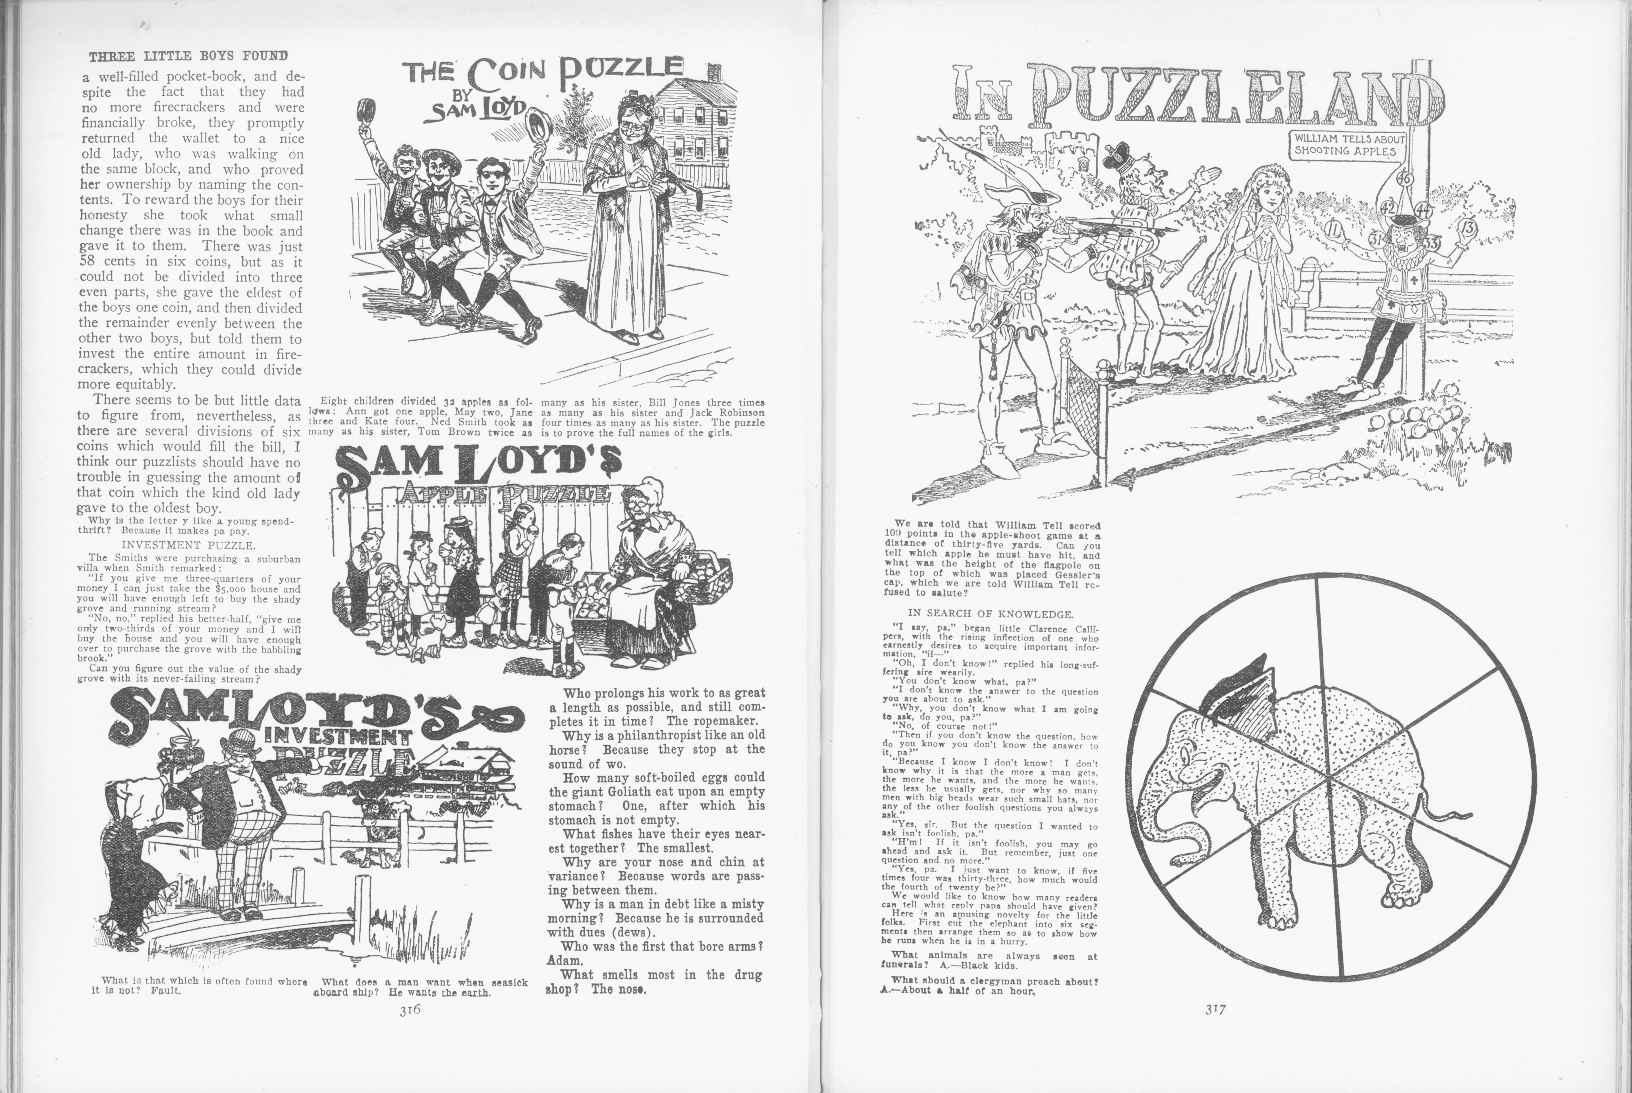 Sam Loyd - Cyclopedia of Puzzles - page 316-317